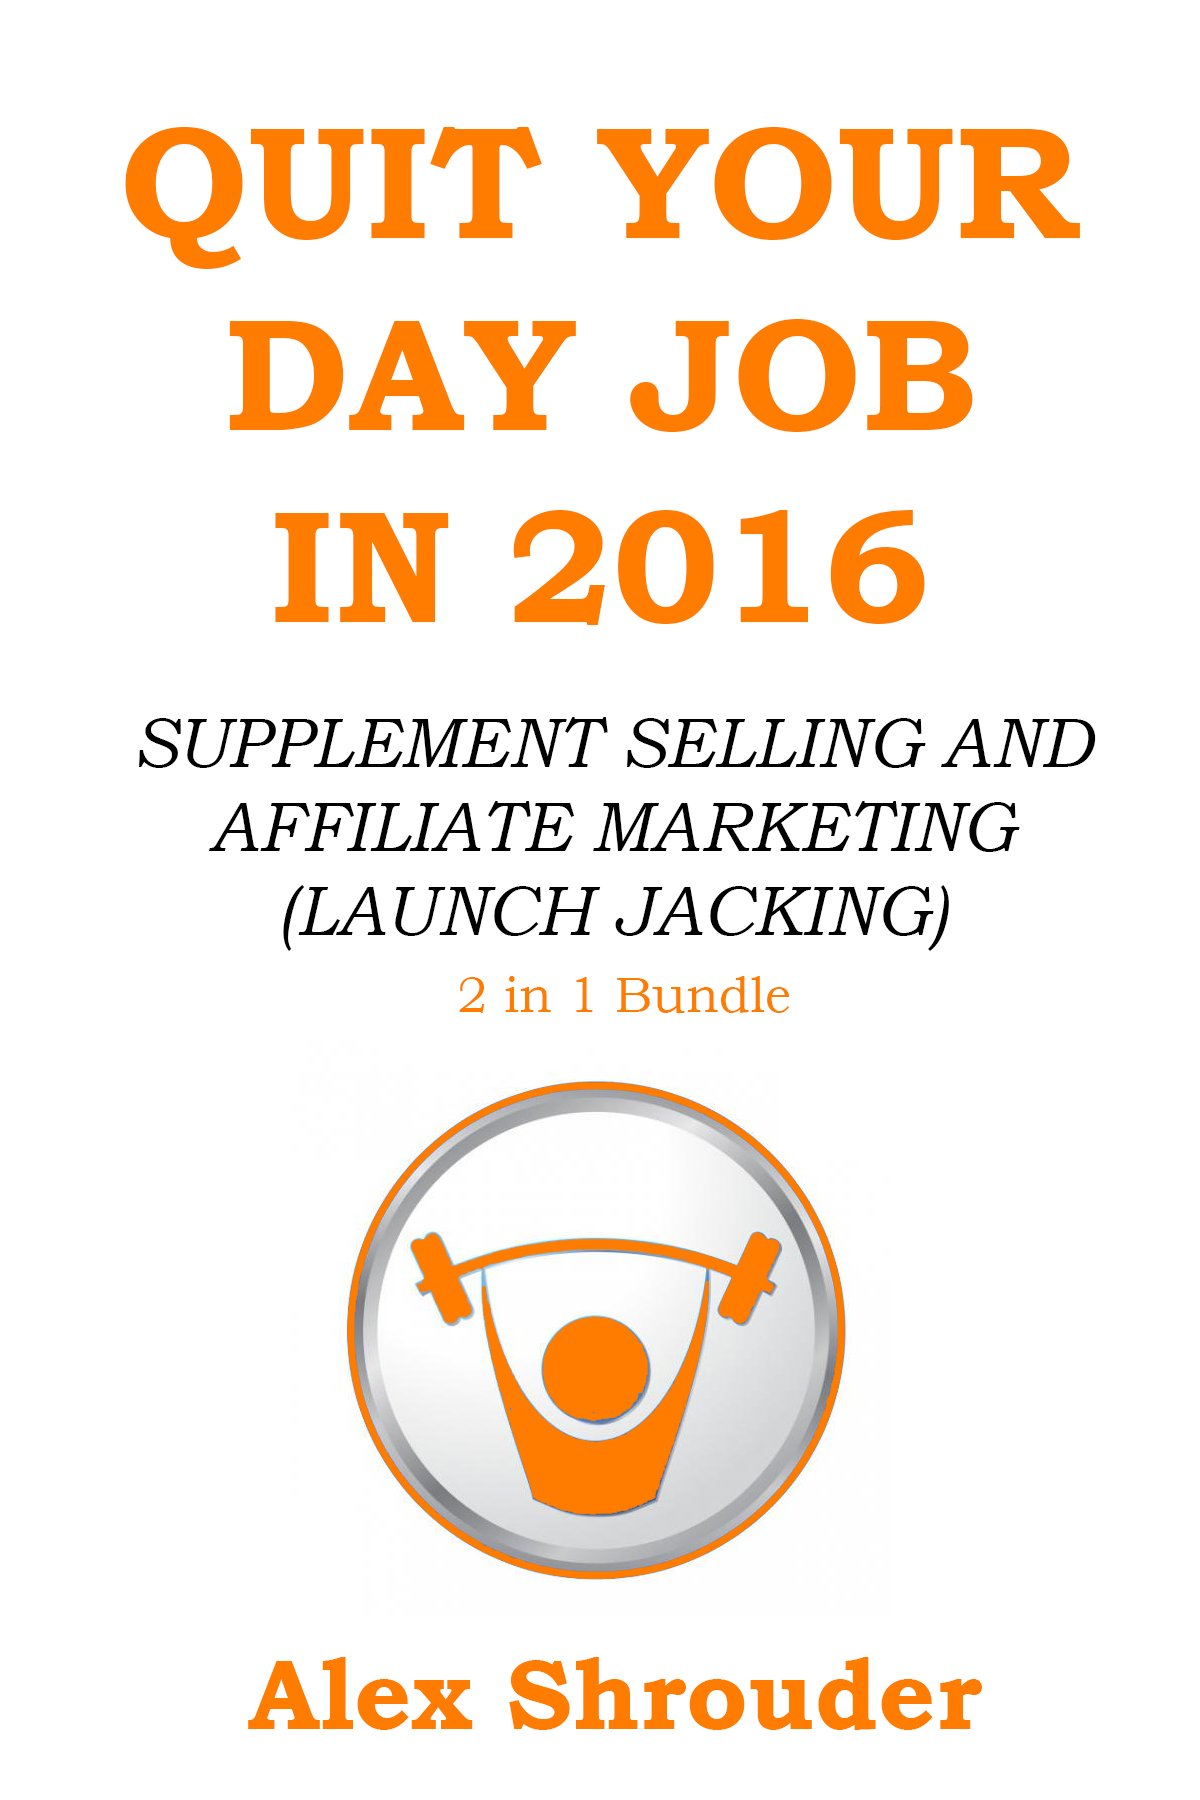 QUIT YOUR DAY JOB IN 2016 (2 in 1 Power Bundle): SUPPLEMENT SELLING AND AFFILIATE MARKETING (LAUNCH JACKING)